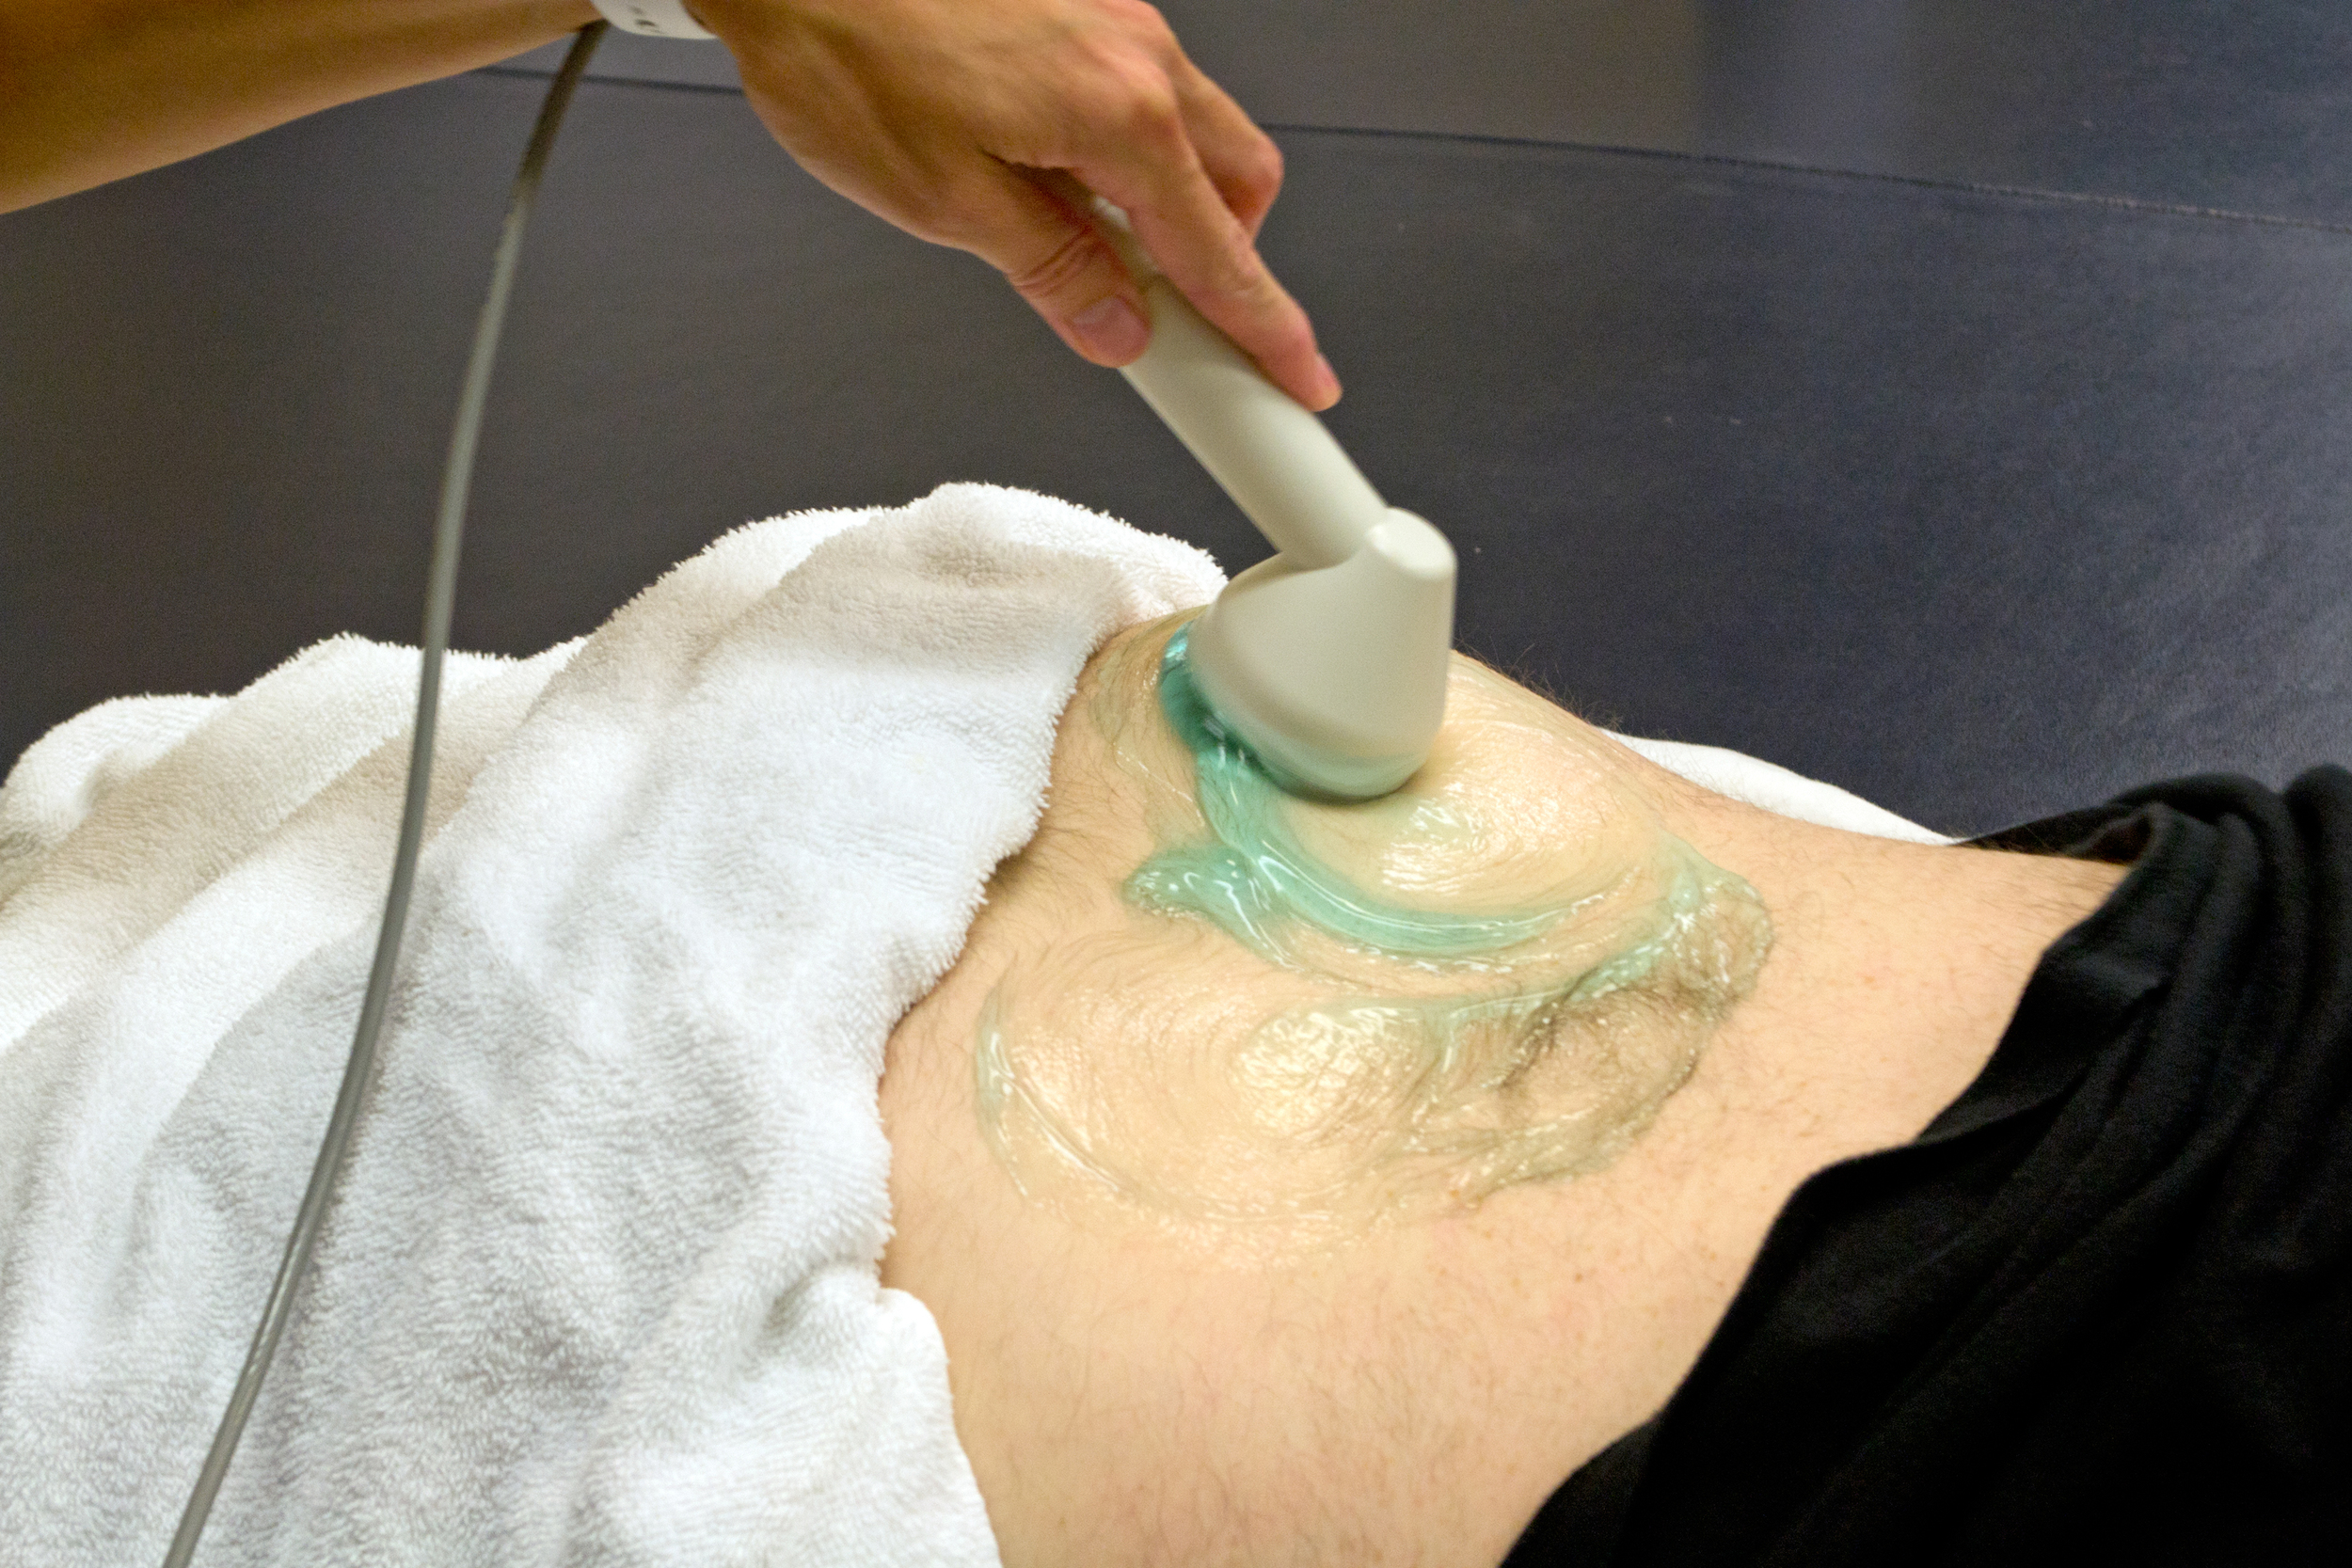 ultrasound treatment on lower back